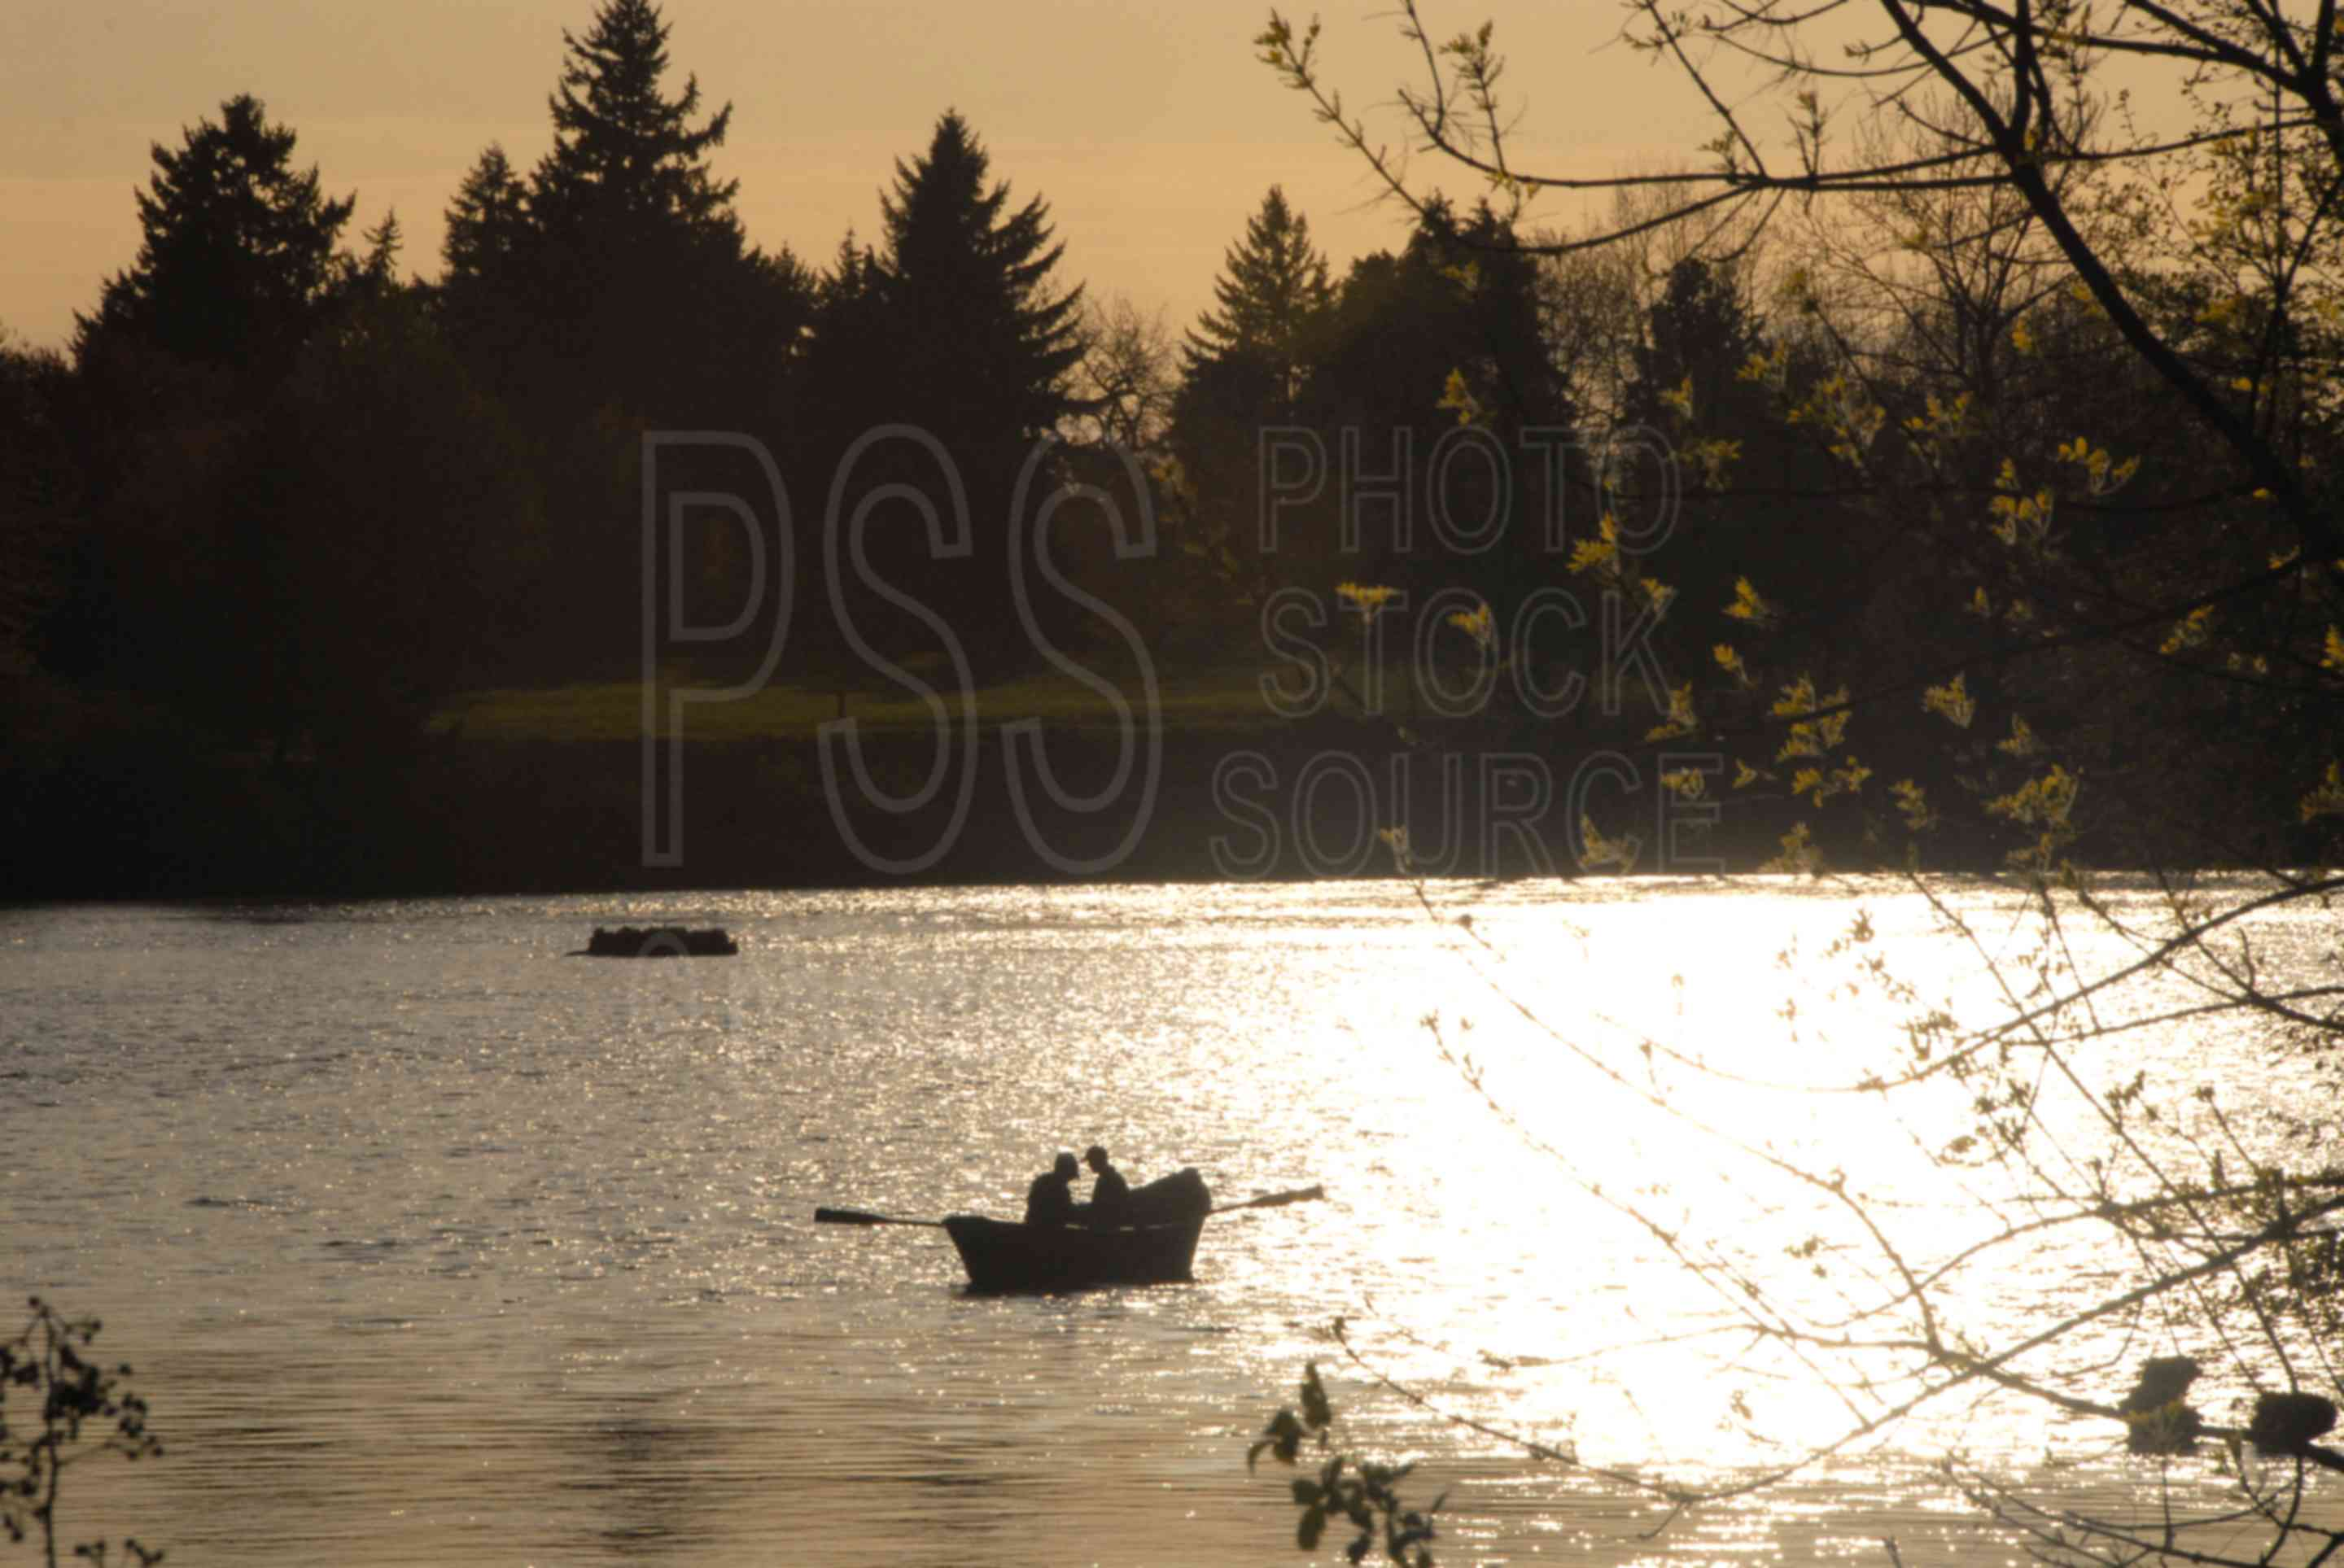 Photo of river boat silhouette by photo stock source for Fishing eugene oregon